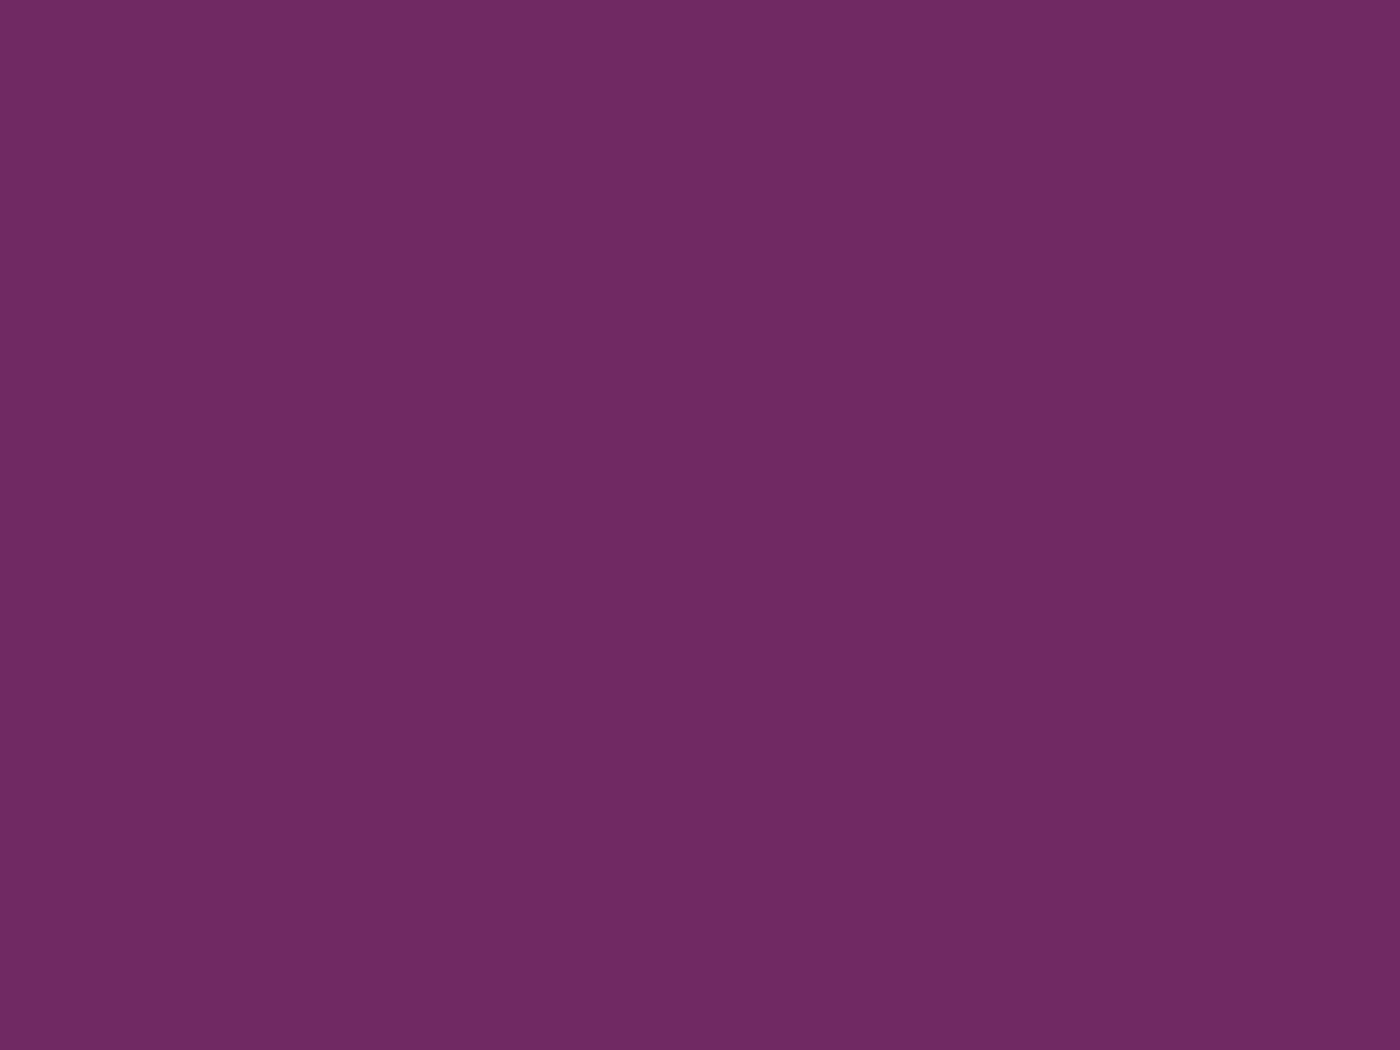 1400x1050 Byzantium Solid Color Background